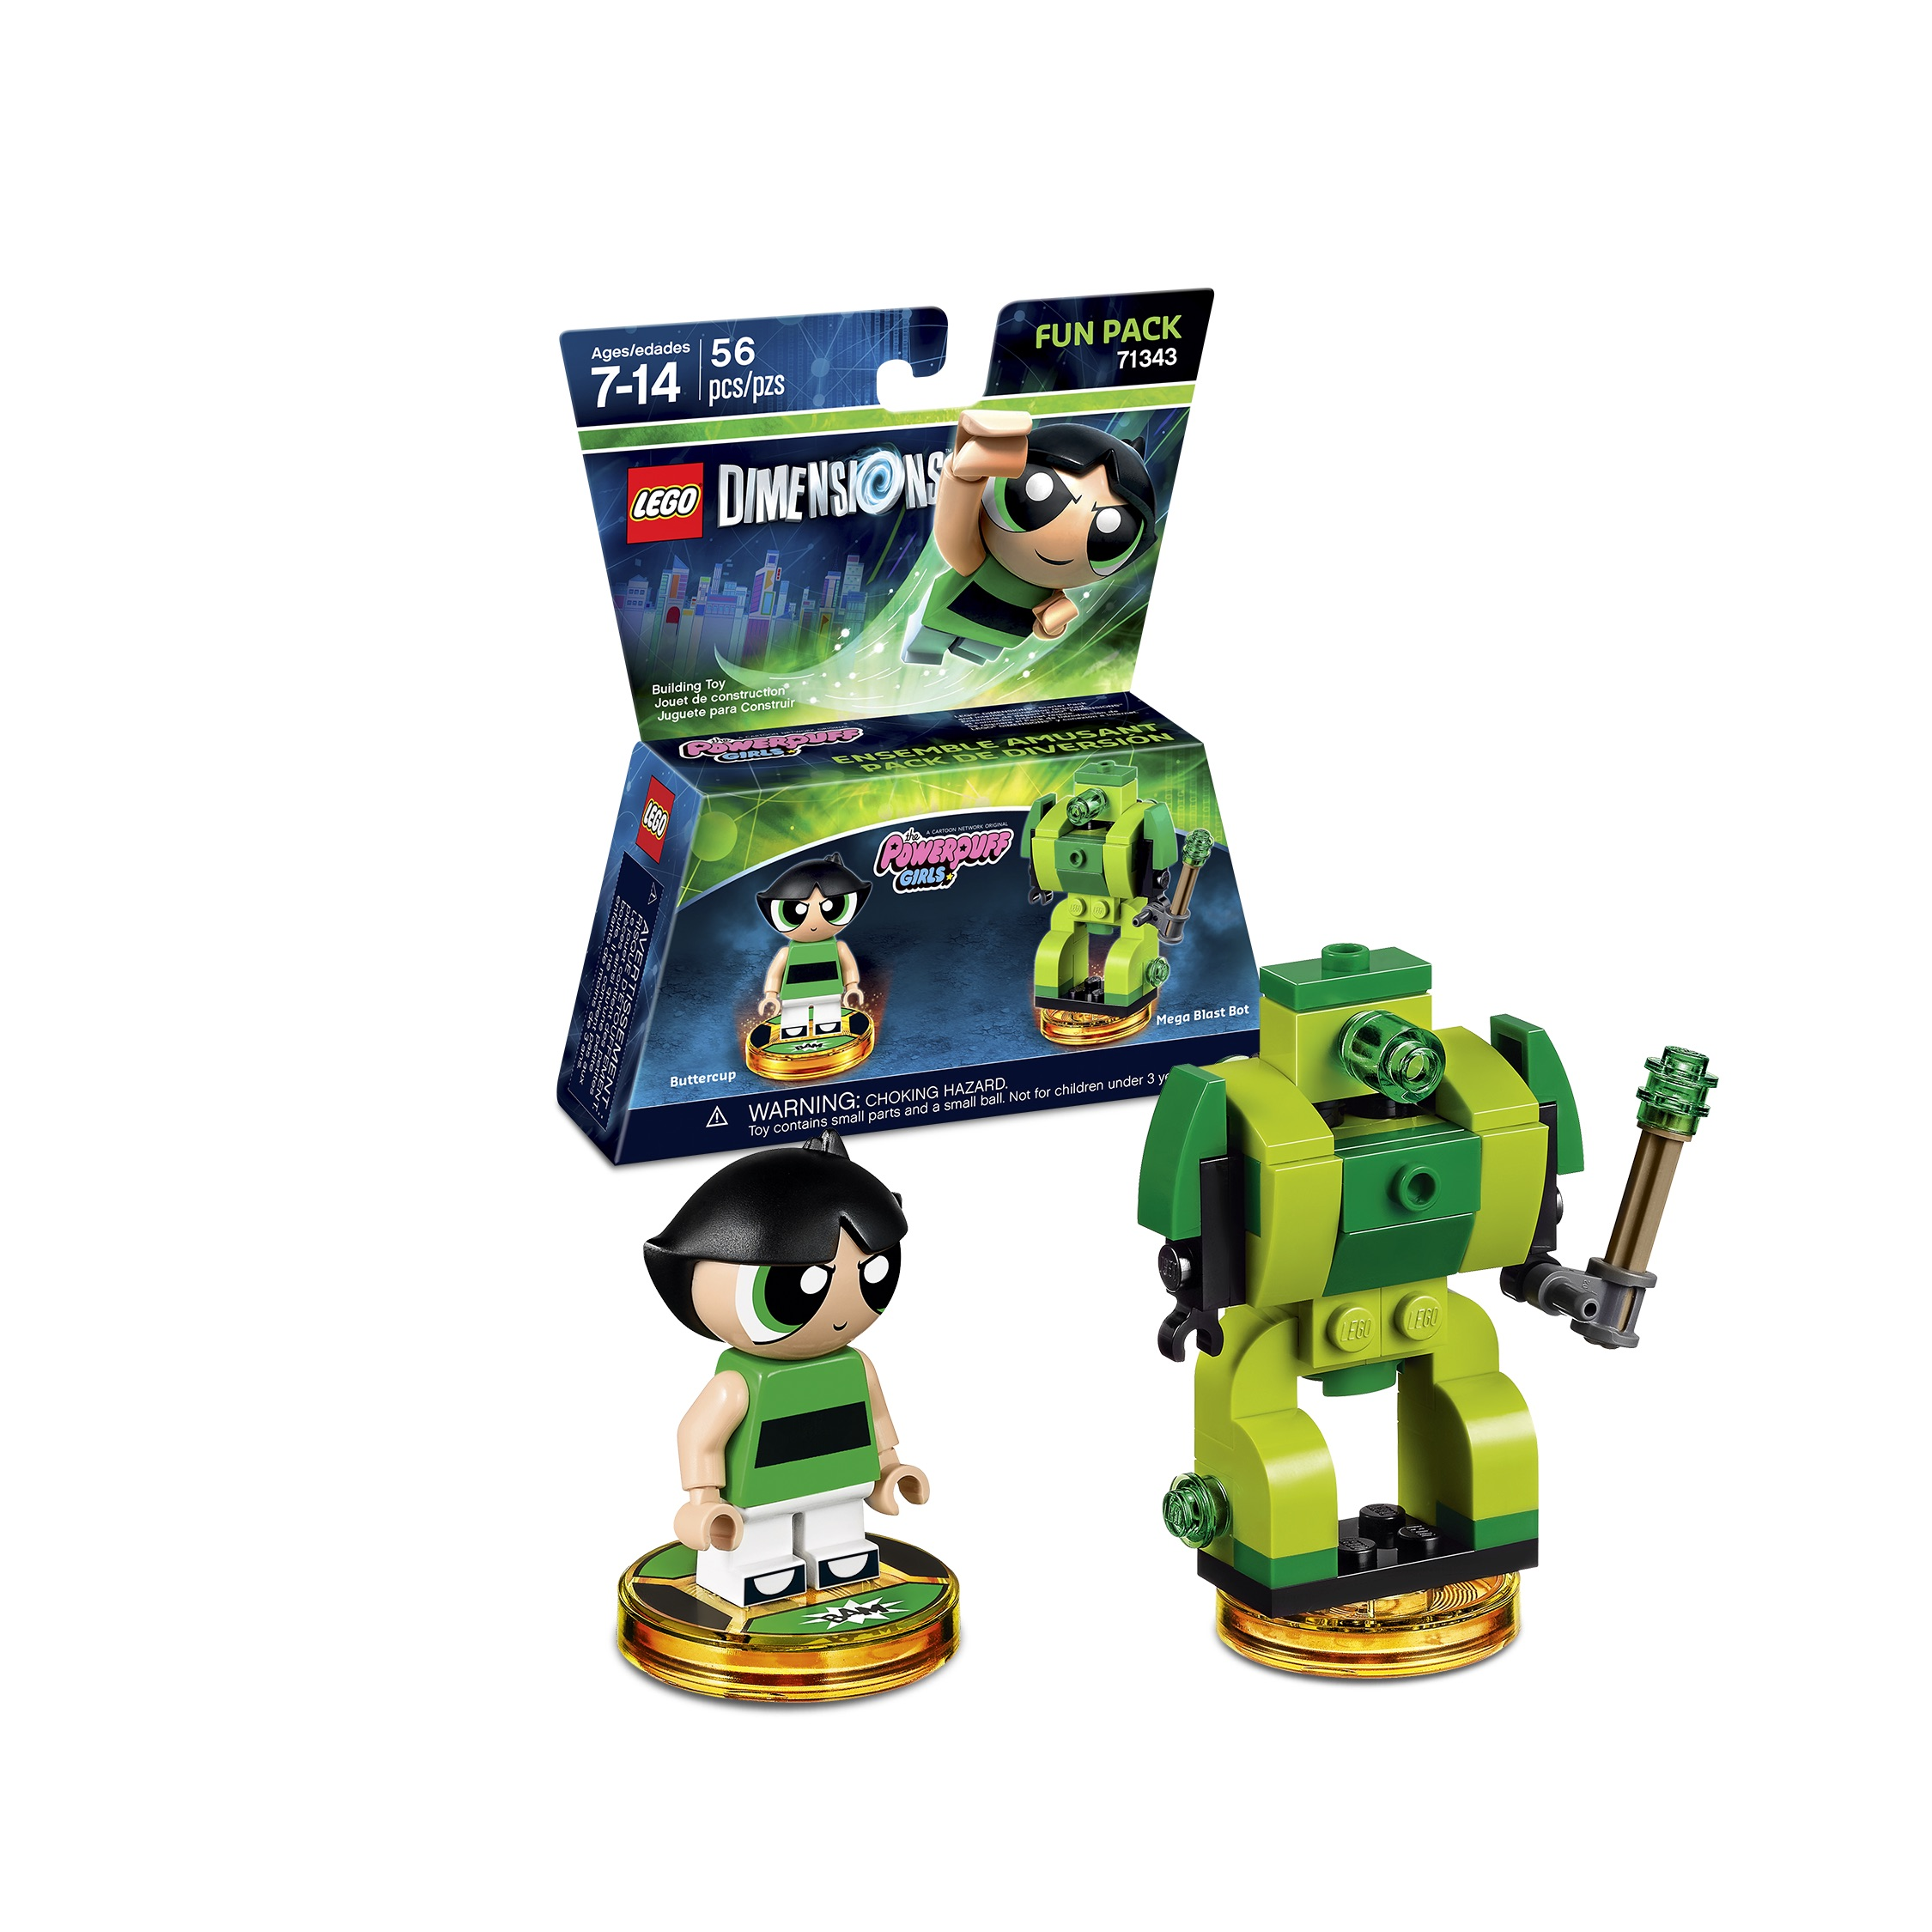 LEGO Dimensions - The Powerpuff Girls Fun Pack